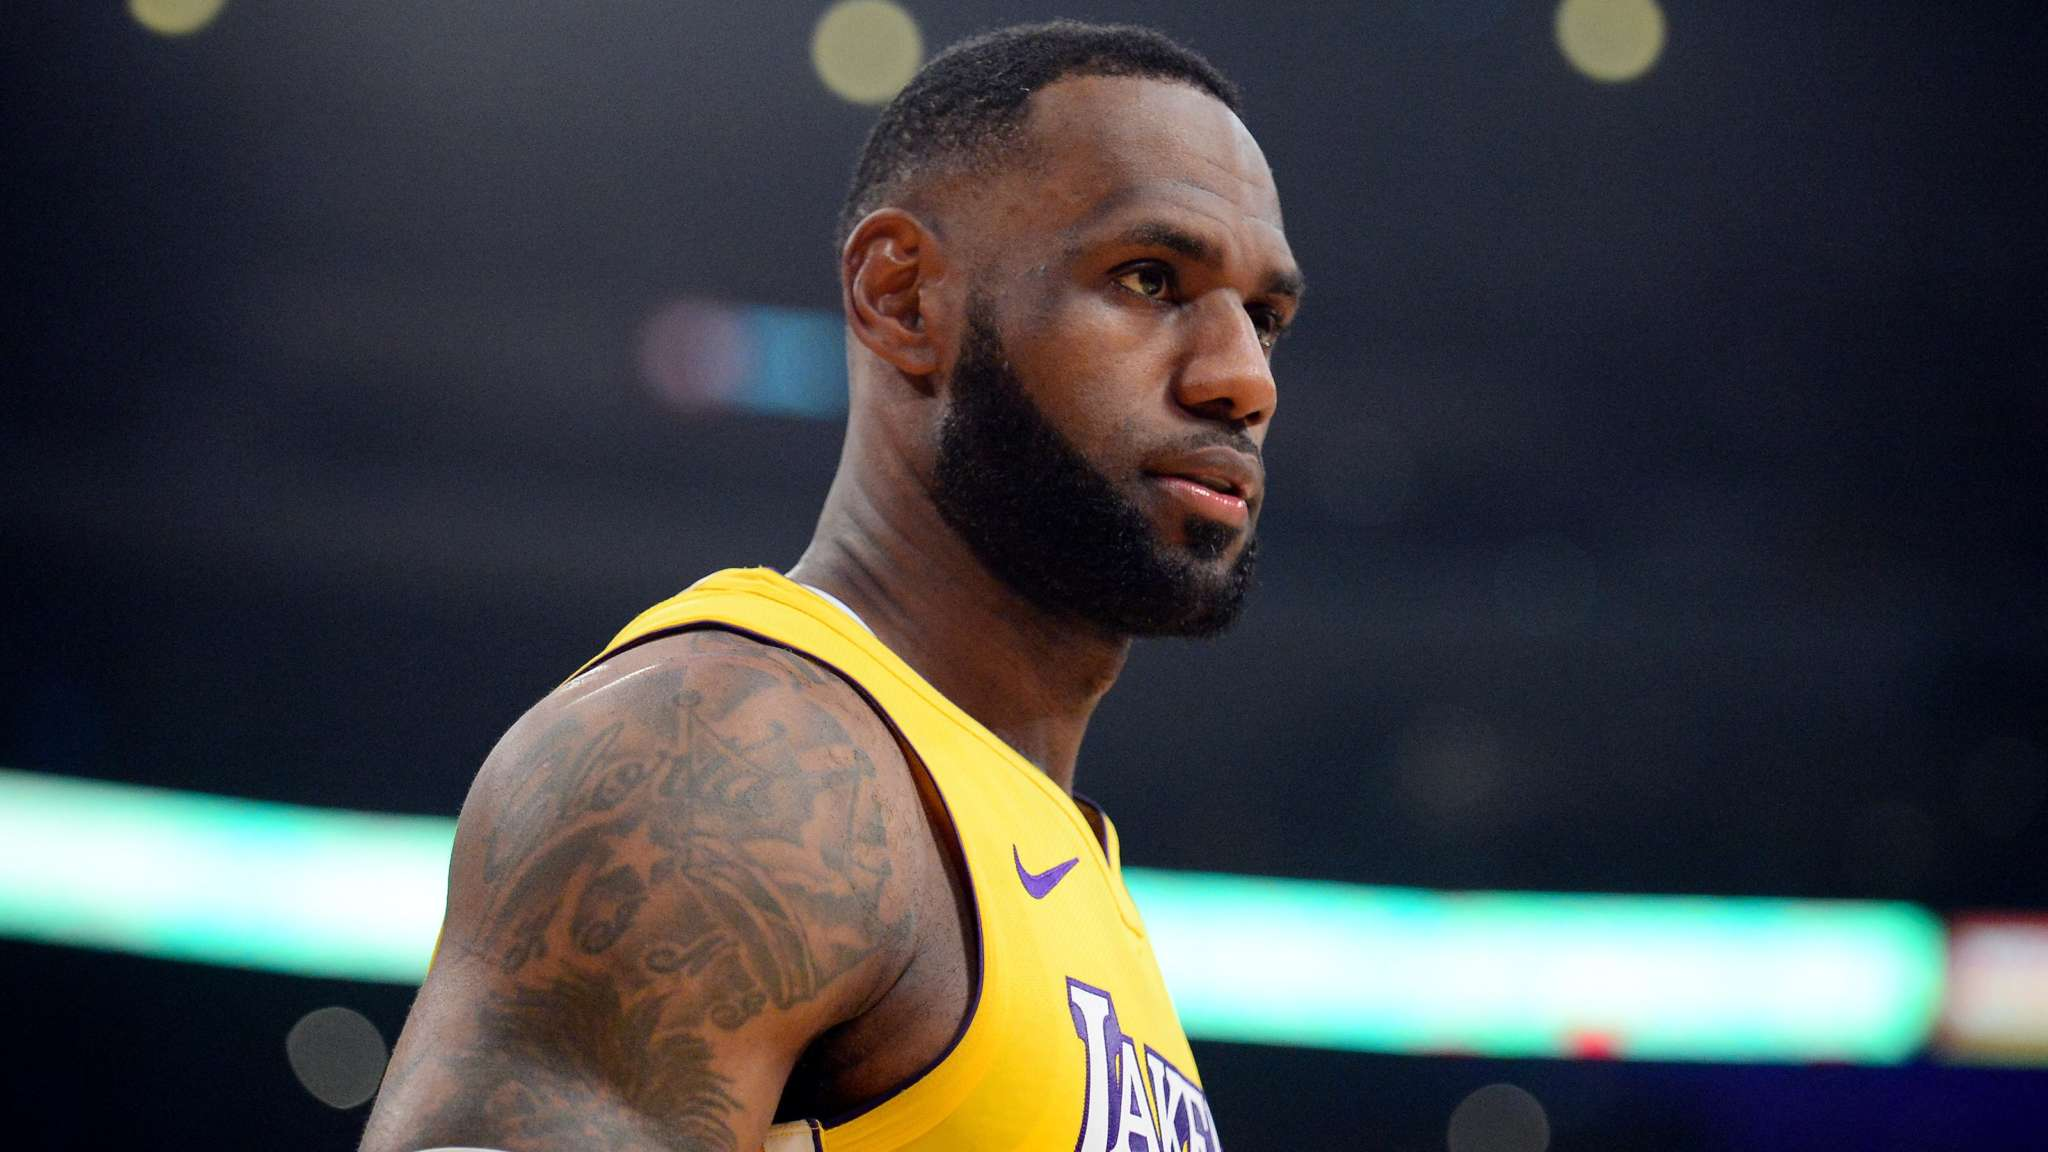 LeBron James' Foundation Will Launch 'House Three Thirty' For Job Training And Financial Literacy